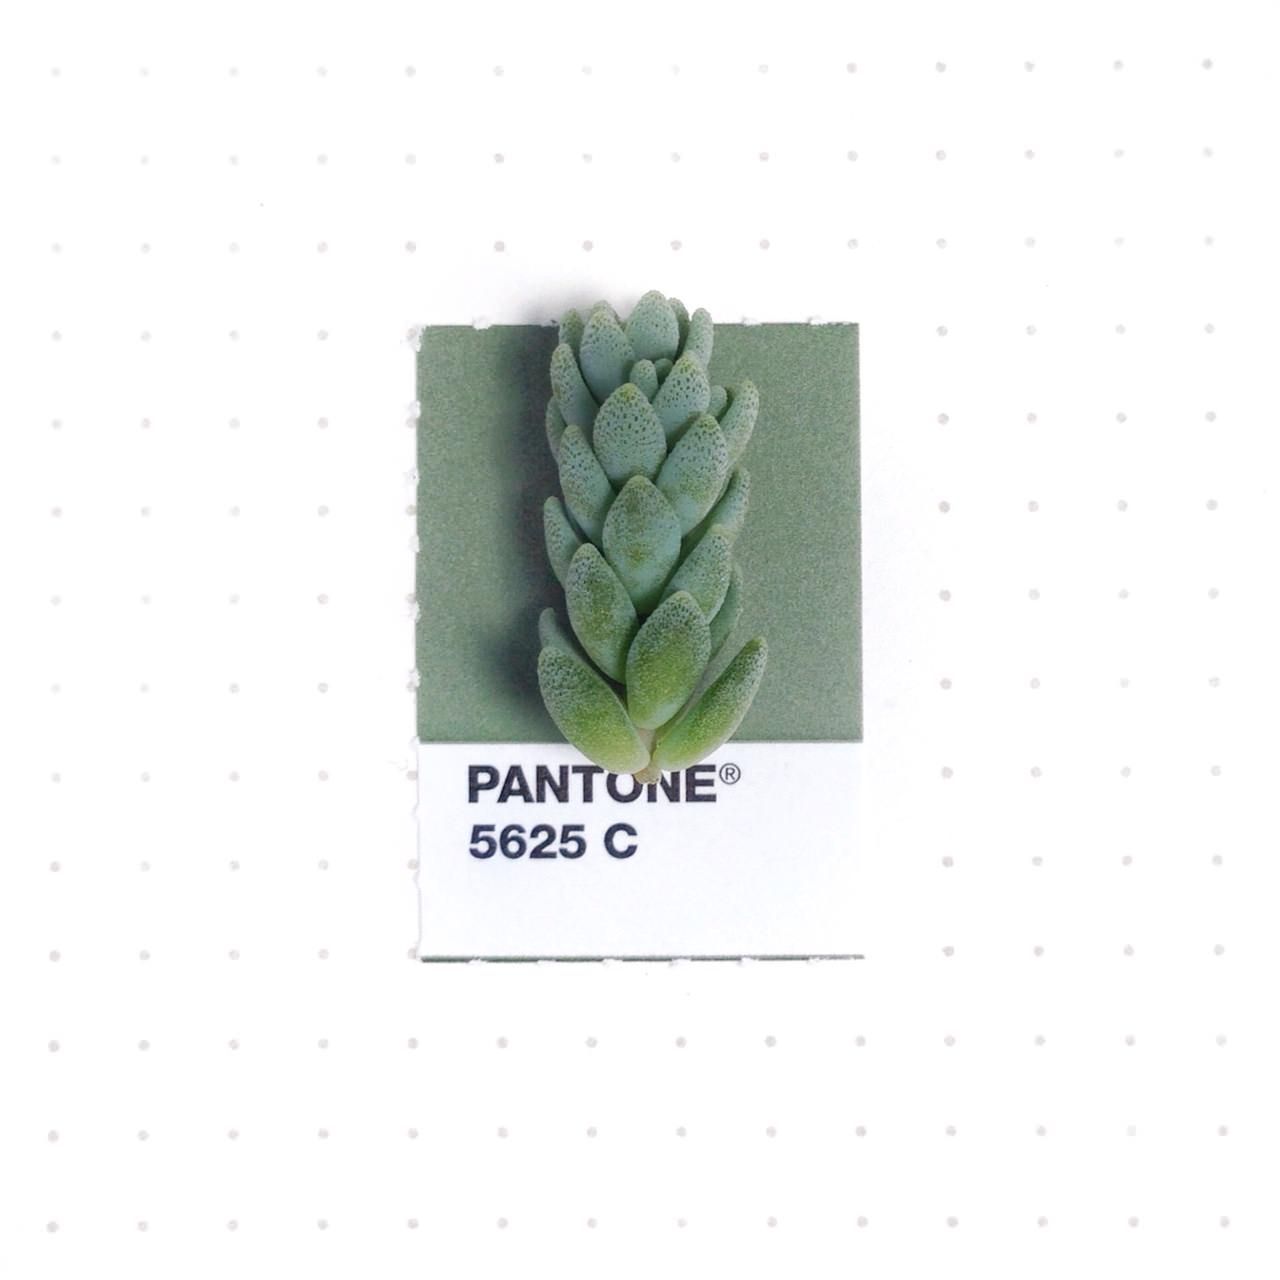 bridging-life-and-design-in-15-pantone-color-matches-07